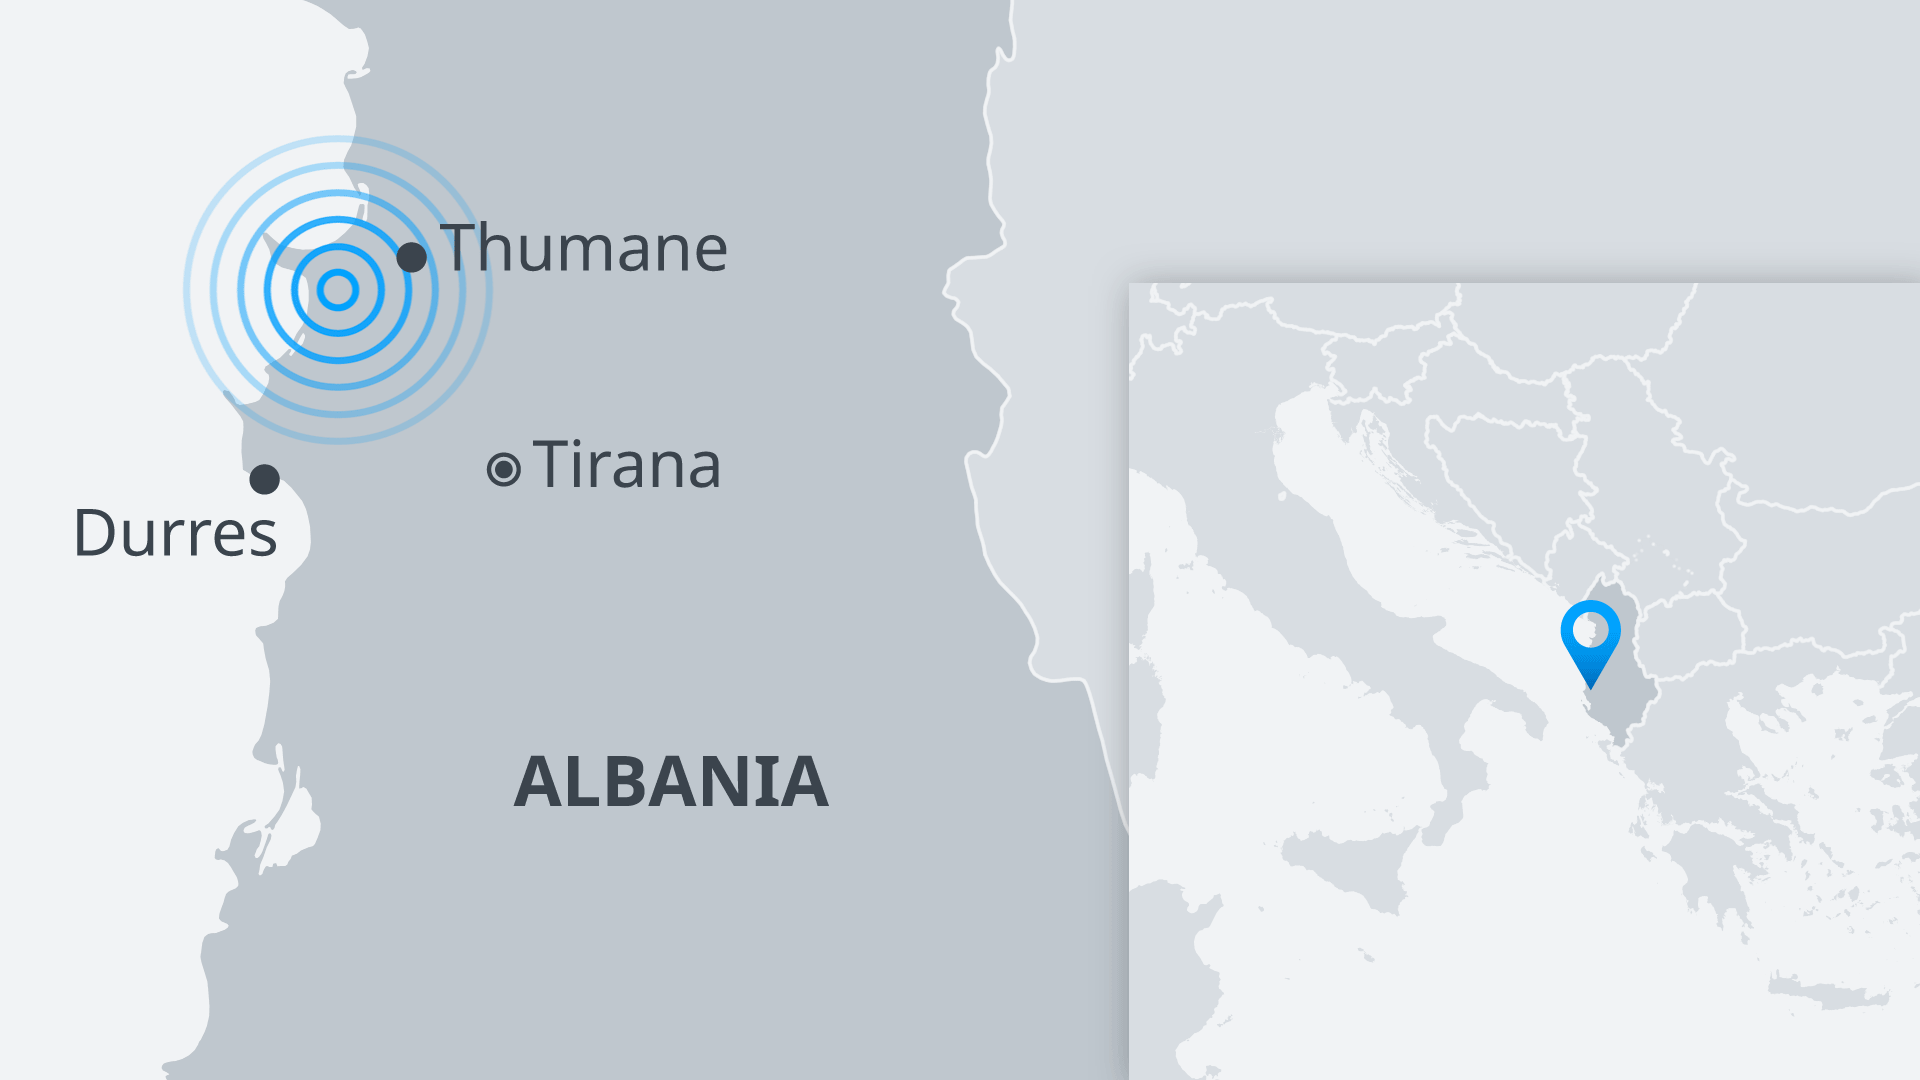 Albania Gest Earthquake In Decades